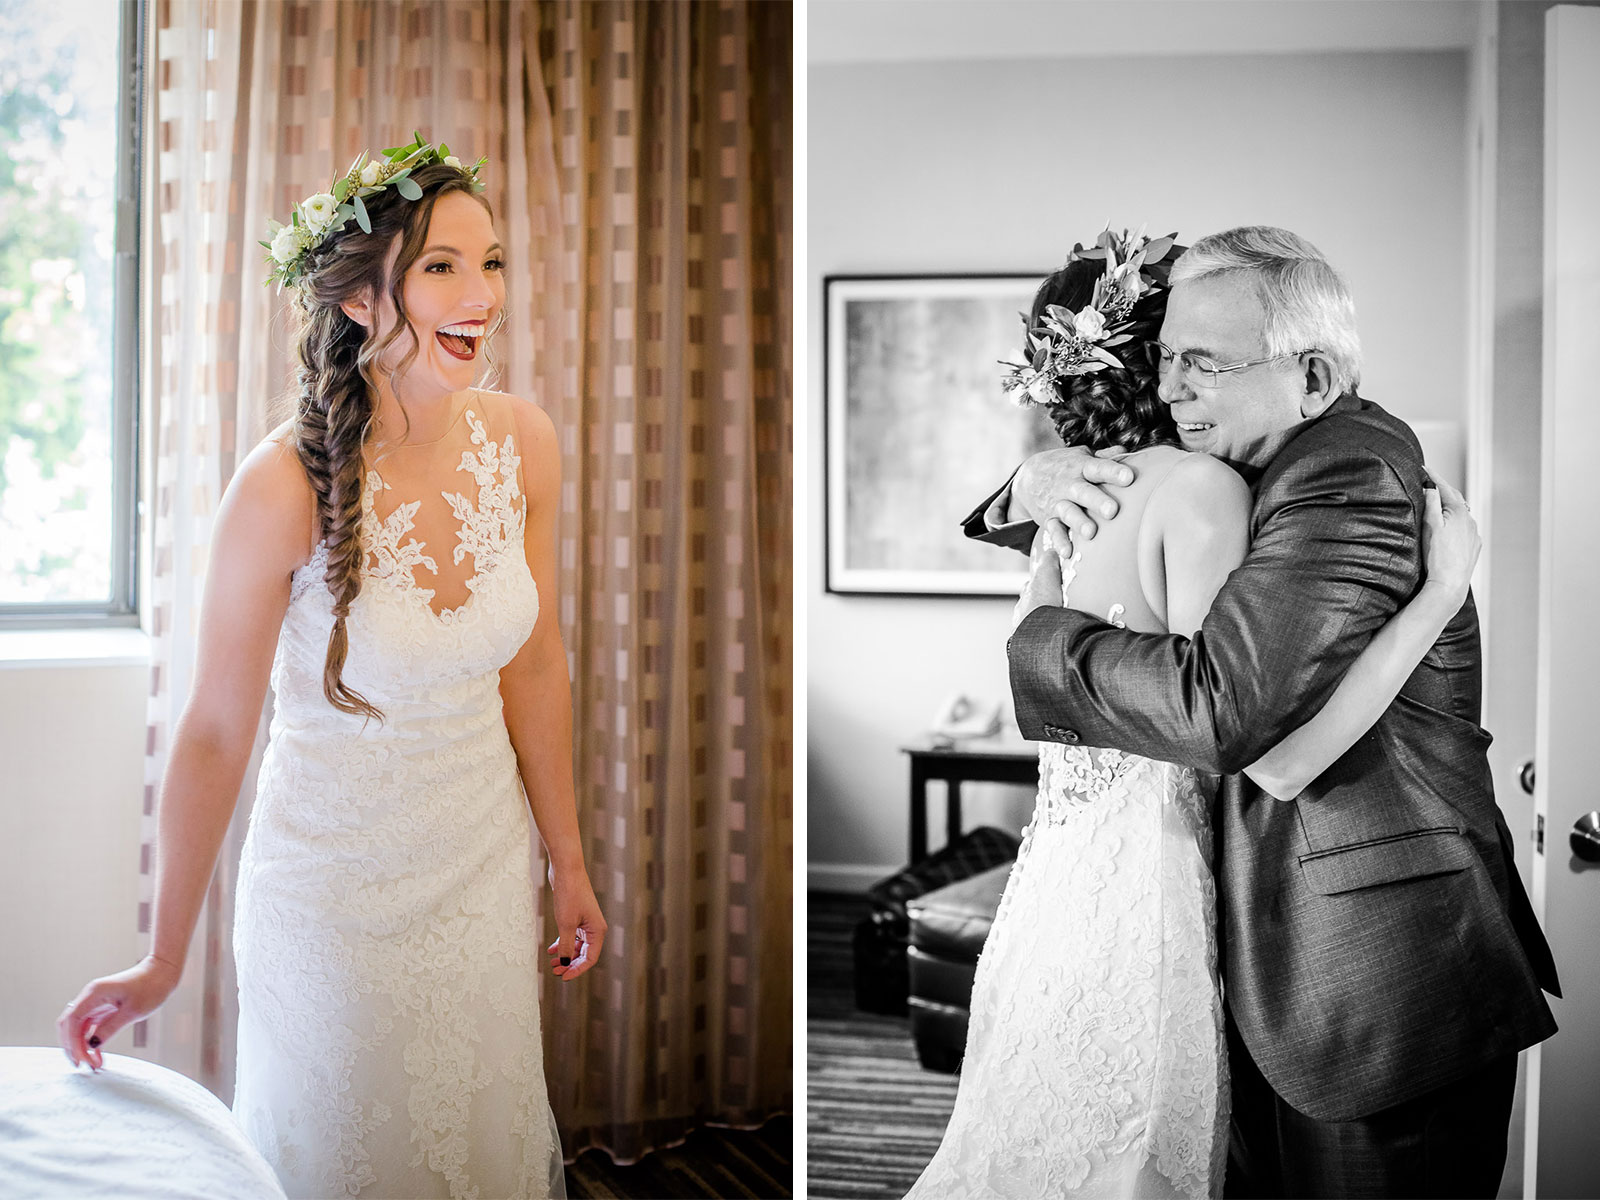 Eric_and_Christy_Photography_Blog_Stephanie_Nick_Wedding-12-13